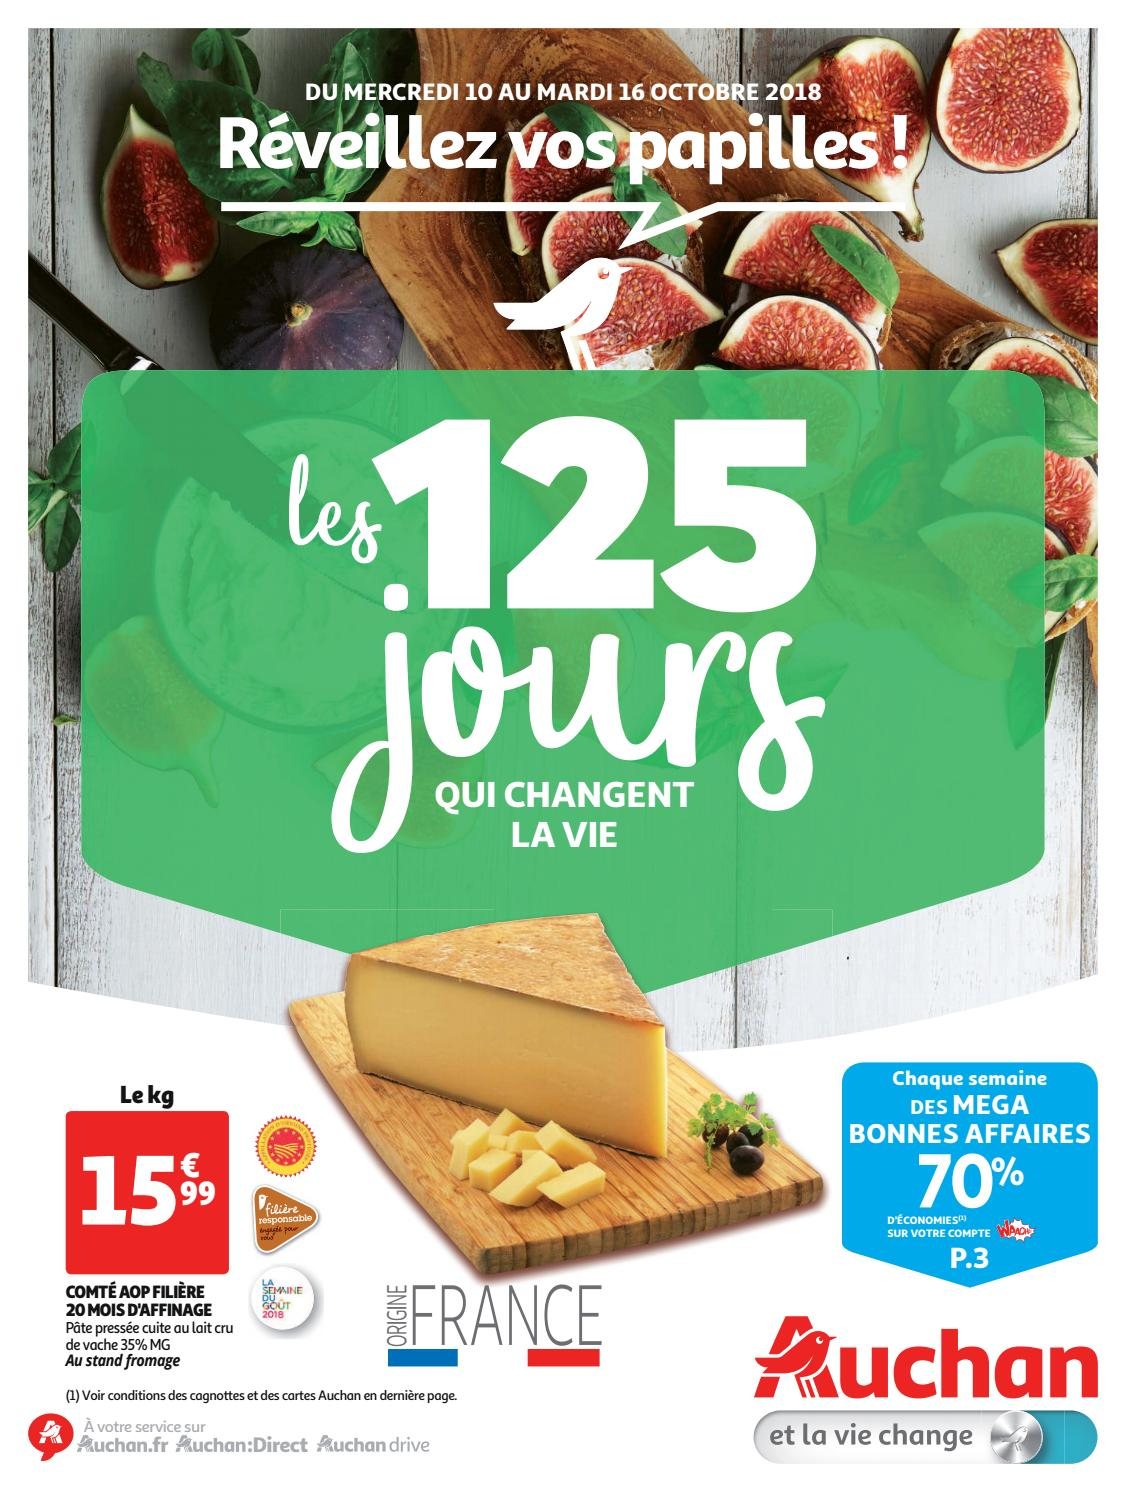 c750dcb64d59b Catalogue Auchan Hypermarché Du 10 Au 16 Octobre 2018 -  monsieurechantillons.com by Monsieurechantillons.fr - issuu